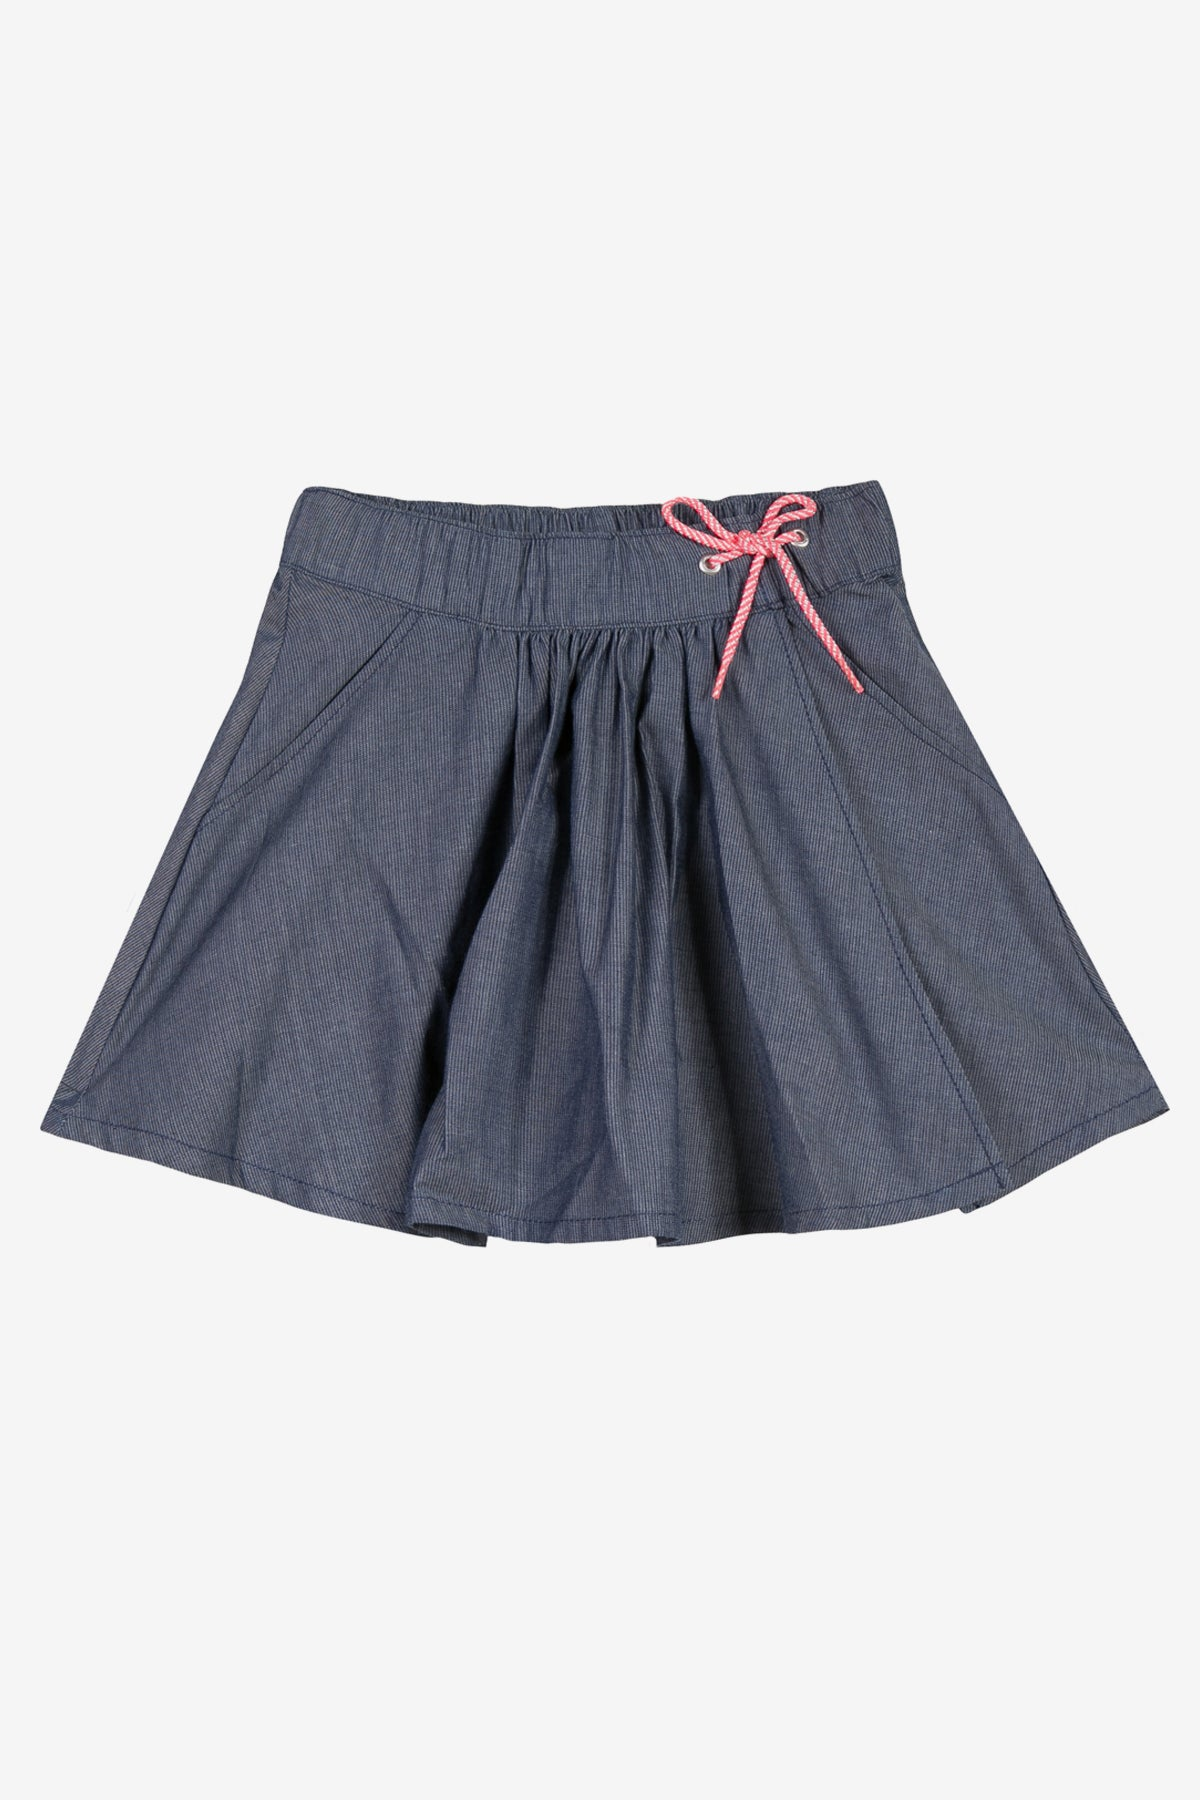 Jean Bourget Classic Chambray Girls Skirt